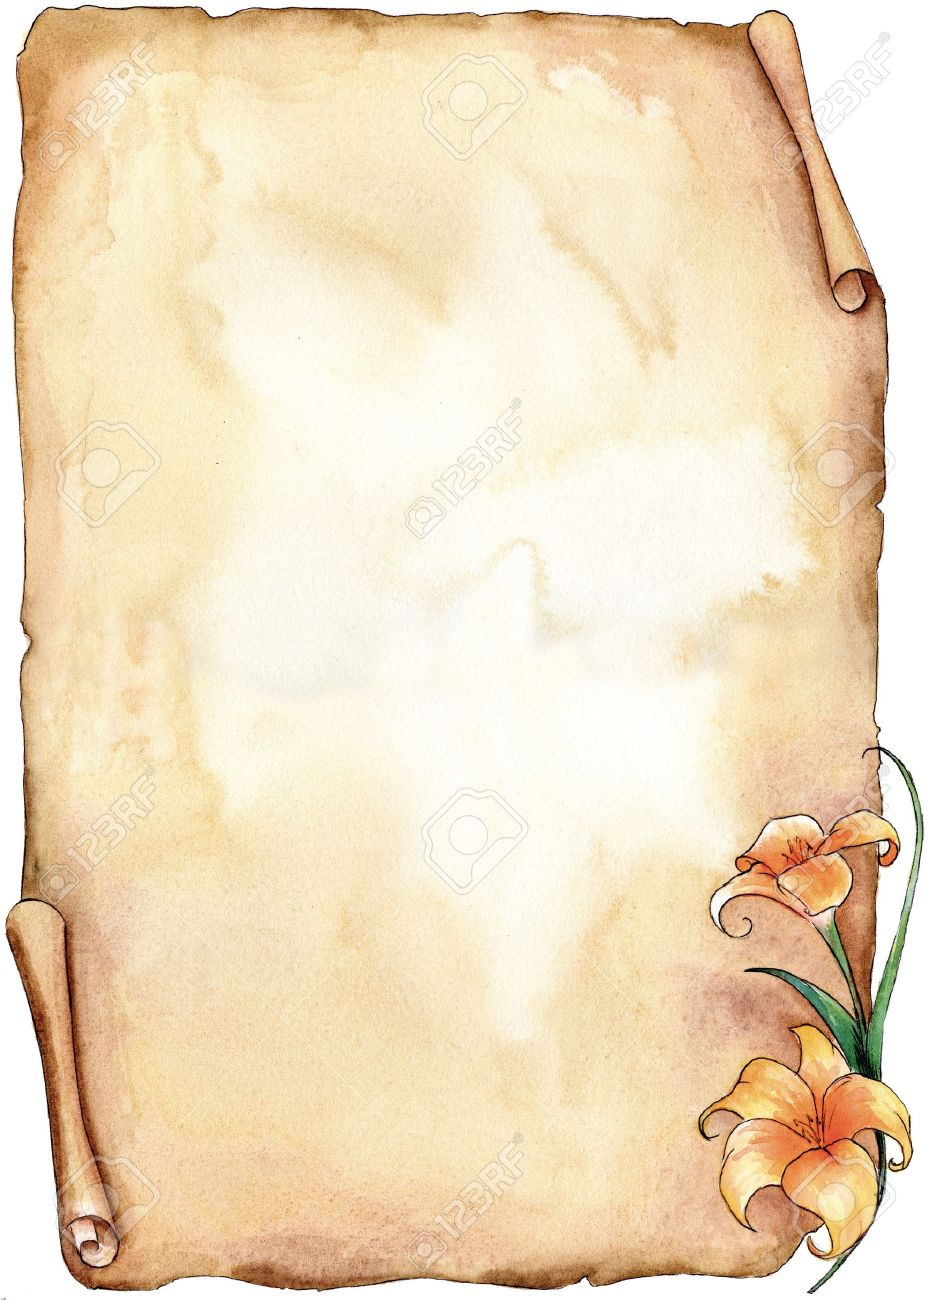 Sepia old parchment with a lilium hand made with watercolors Stock Photo - 13033958